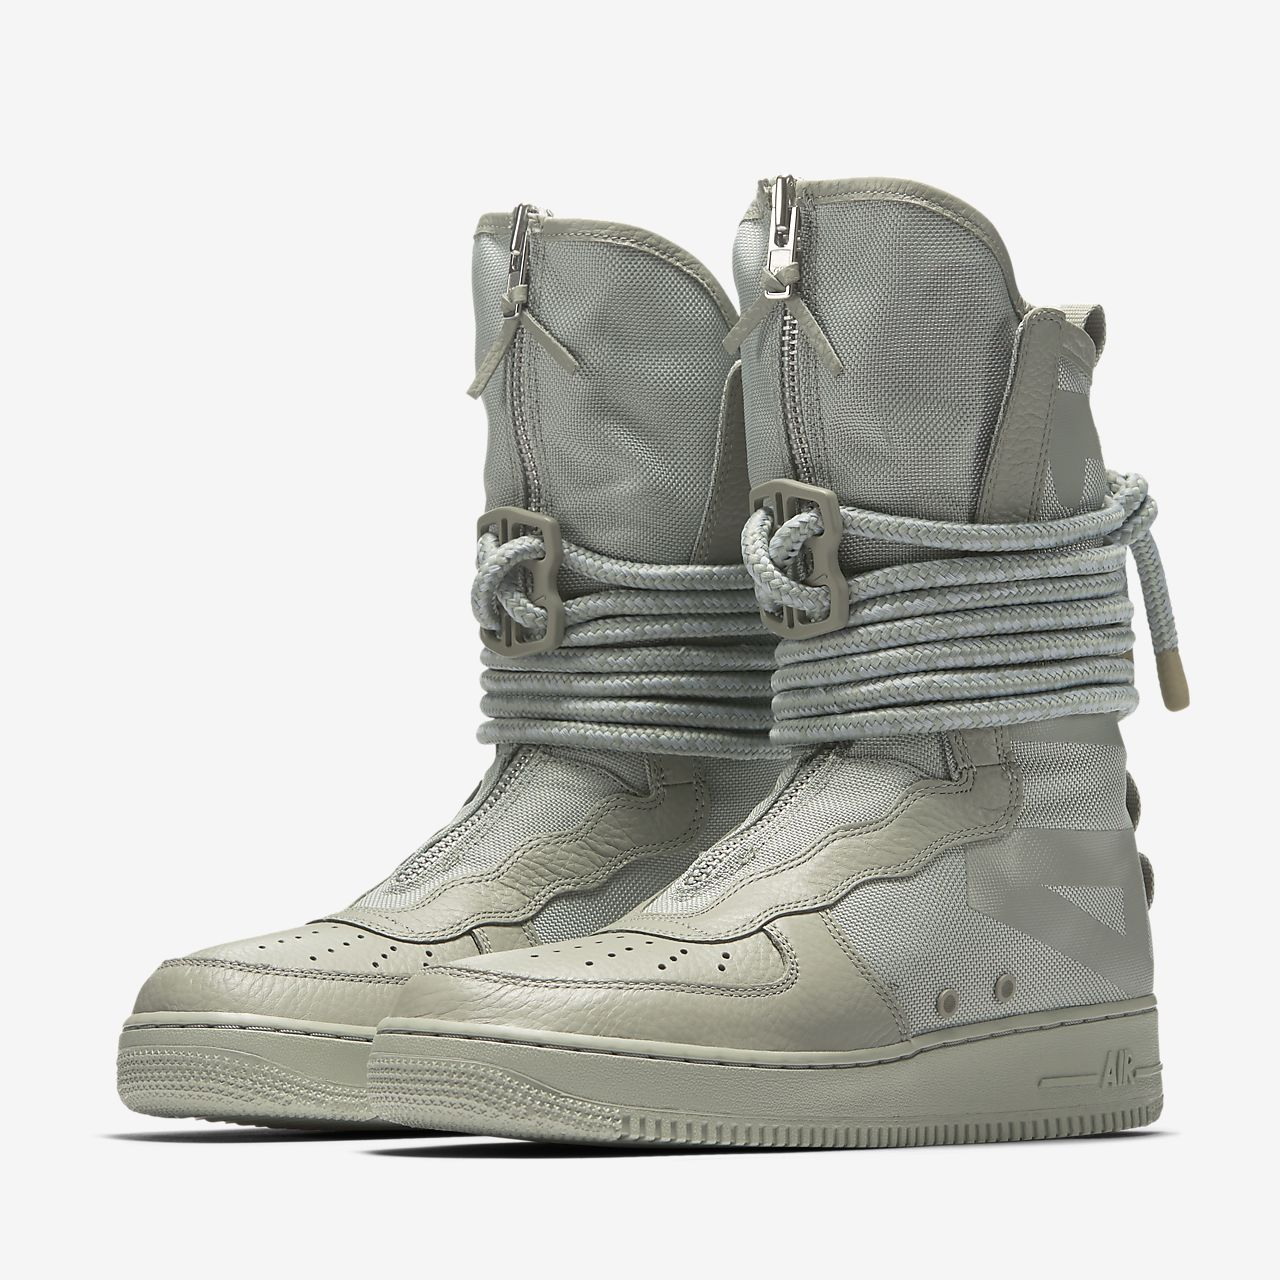 Nike SF Air Force 1 Hi Men's Boot (With images) Nike sf